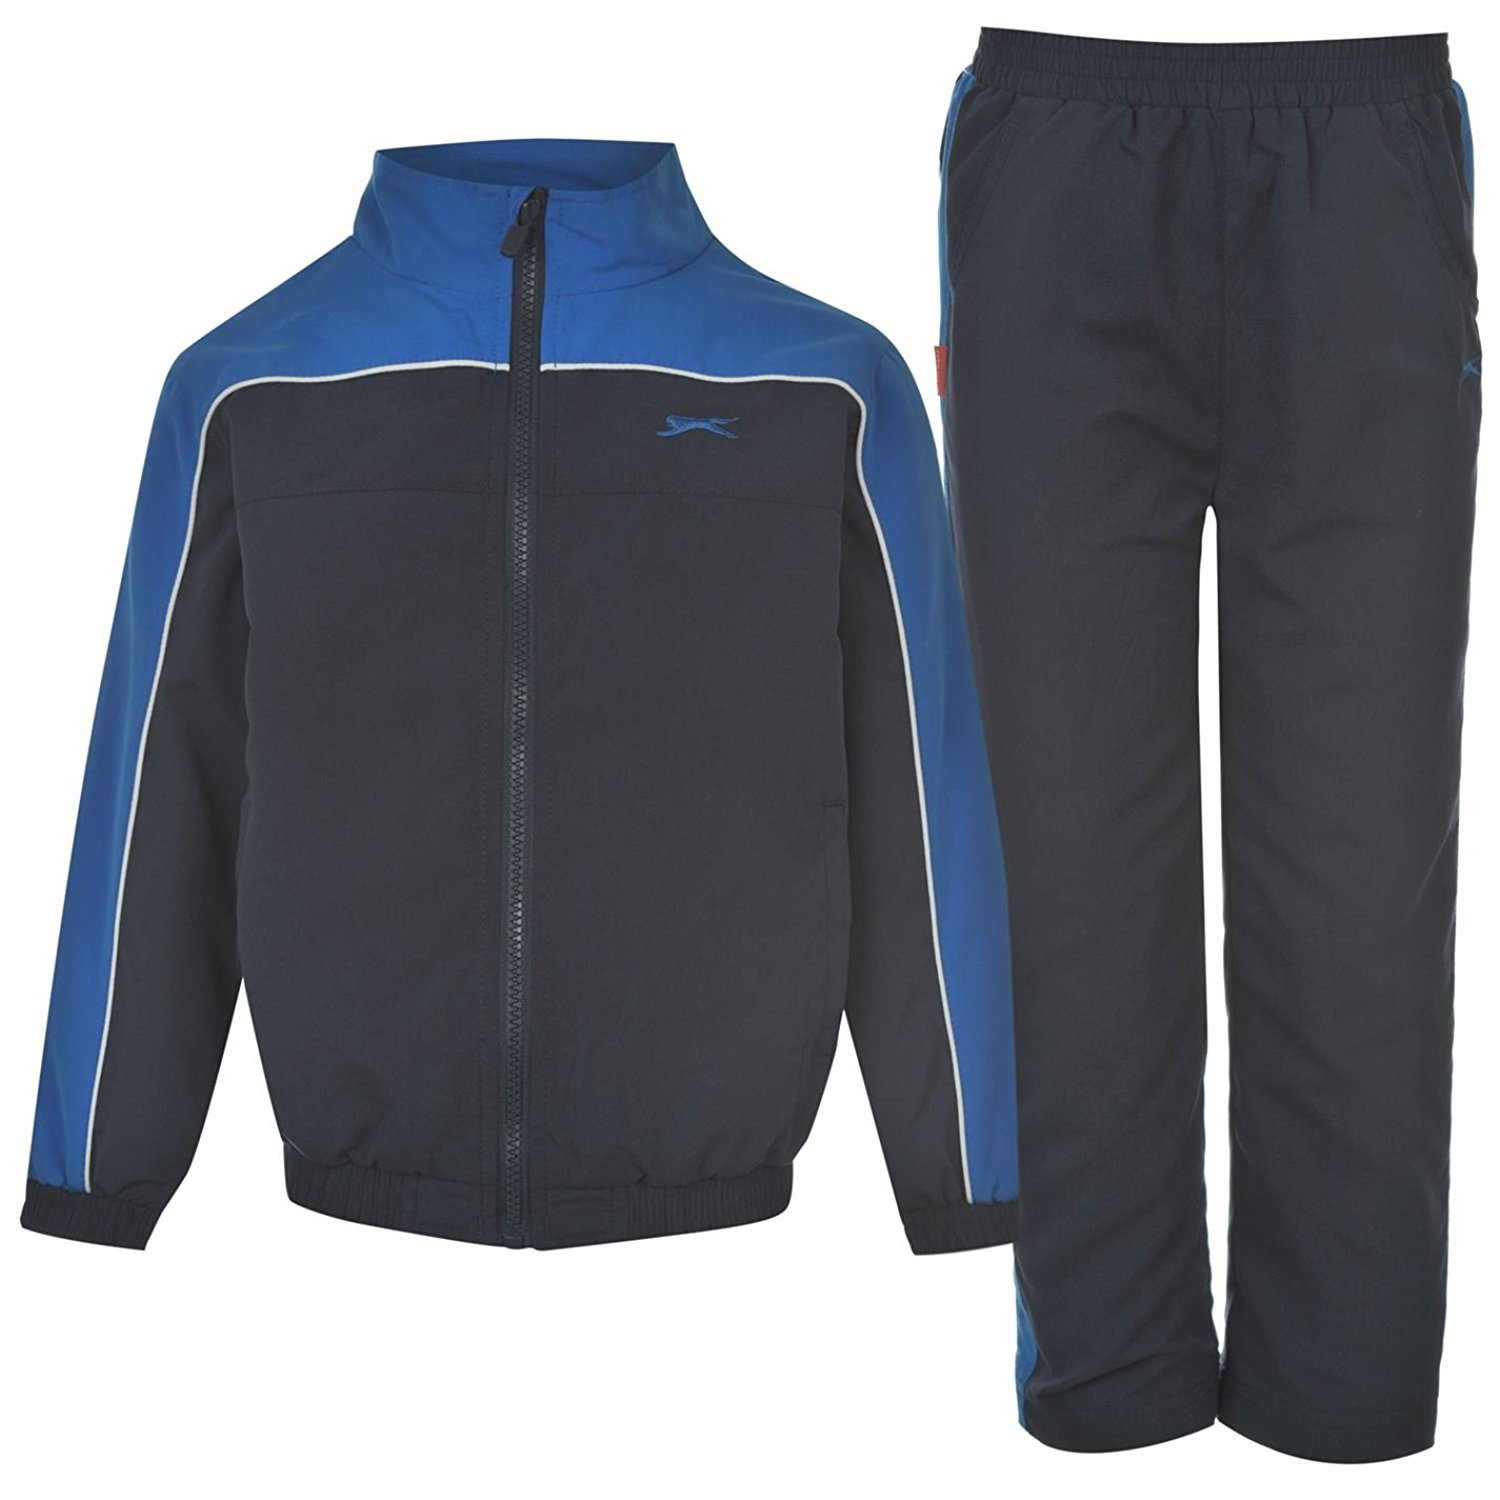 26d59067 Cheap Fila Tracksuit Top, find Fila Tracksuit Top deals on line at ...